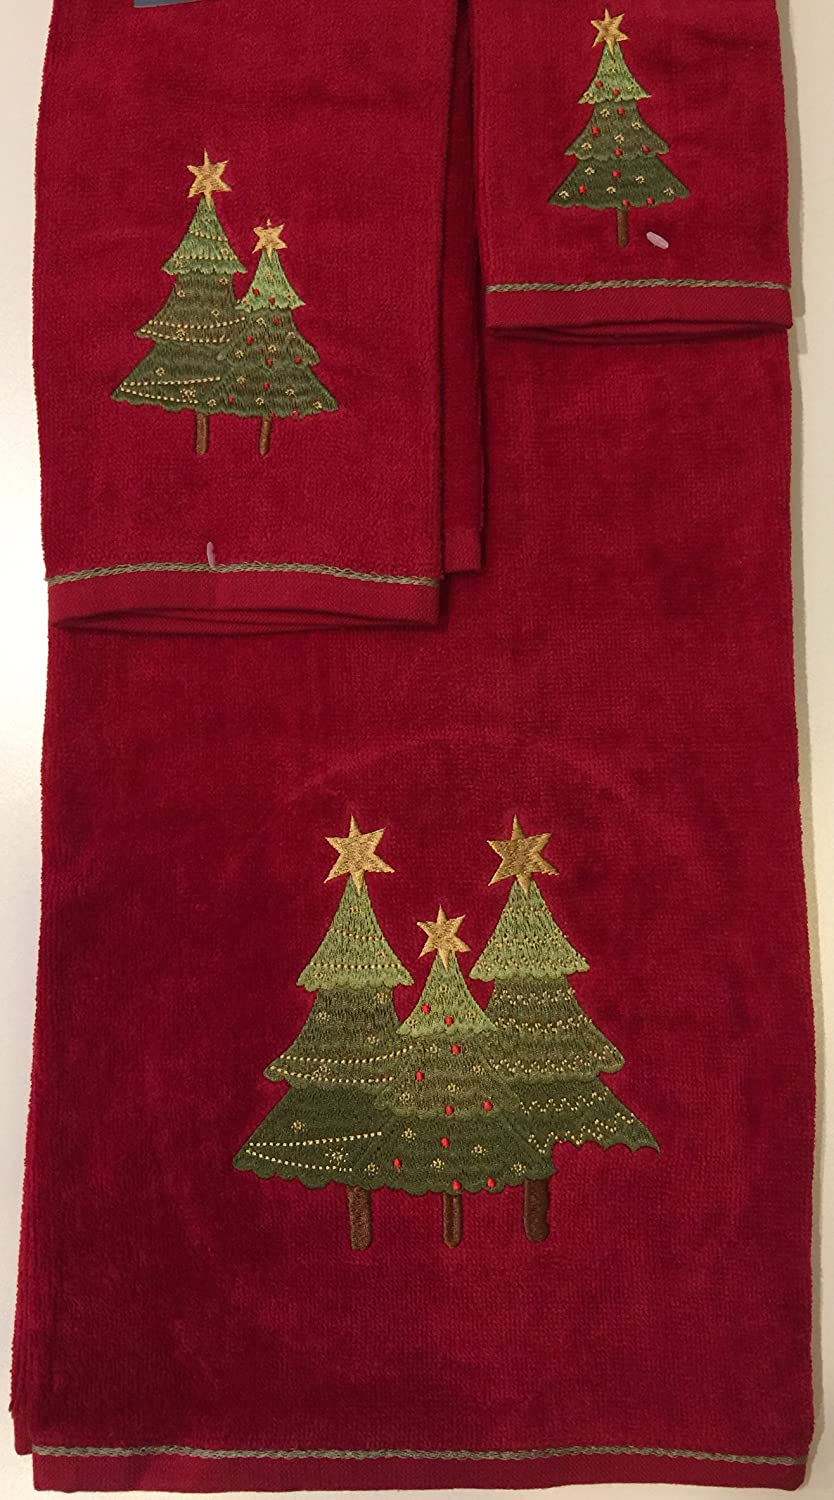 Christmas 3 Piece 100% Cotton Towel Set - Christmas Tree ( 6 Patterns, Great Christmas Gift) Homefabrics